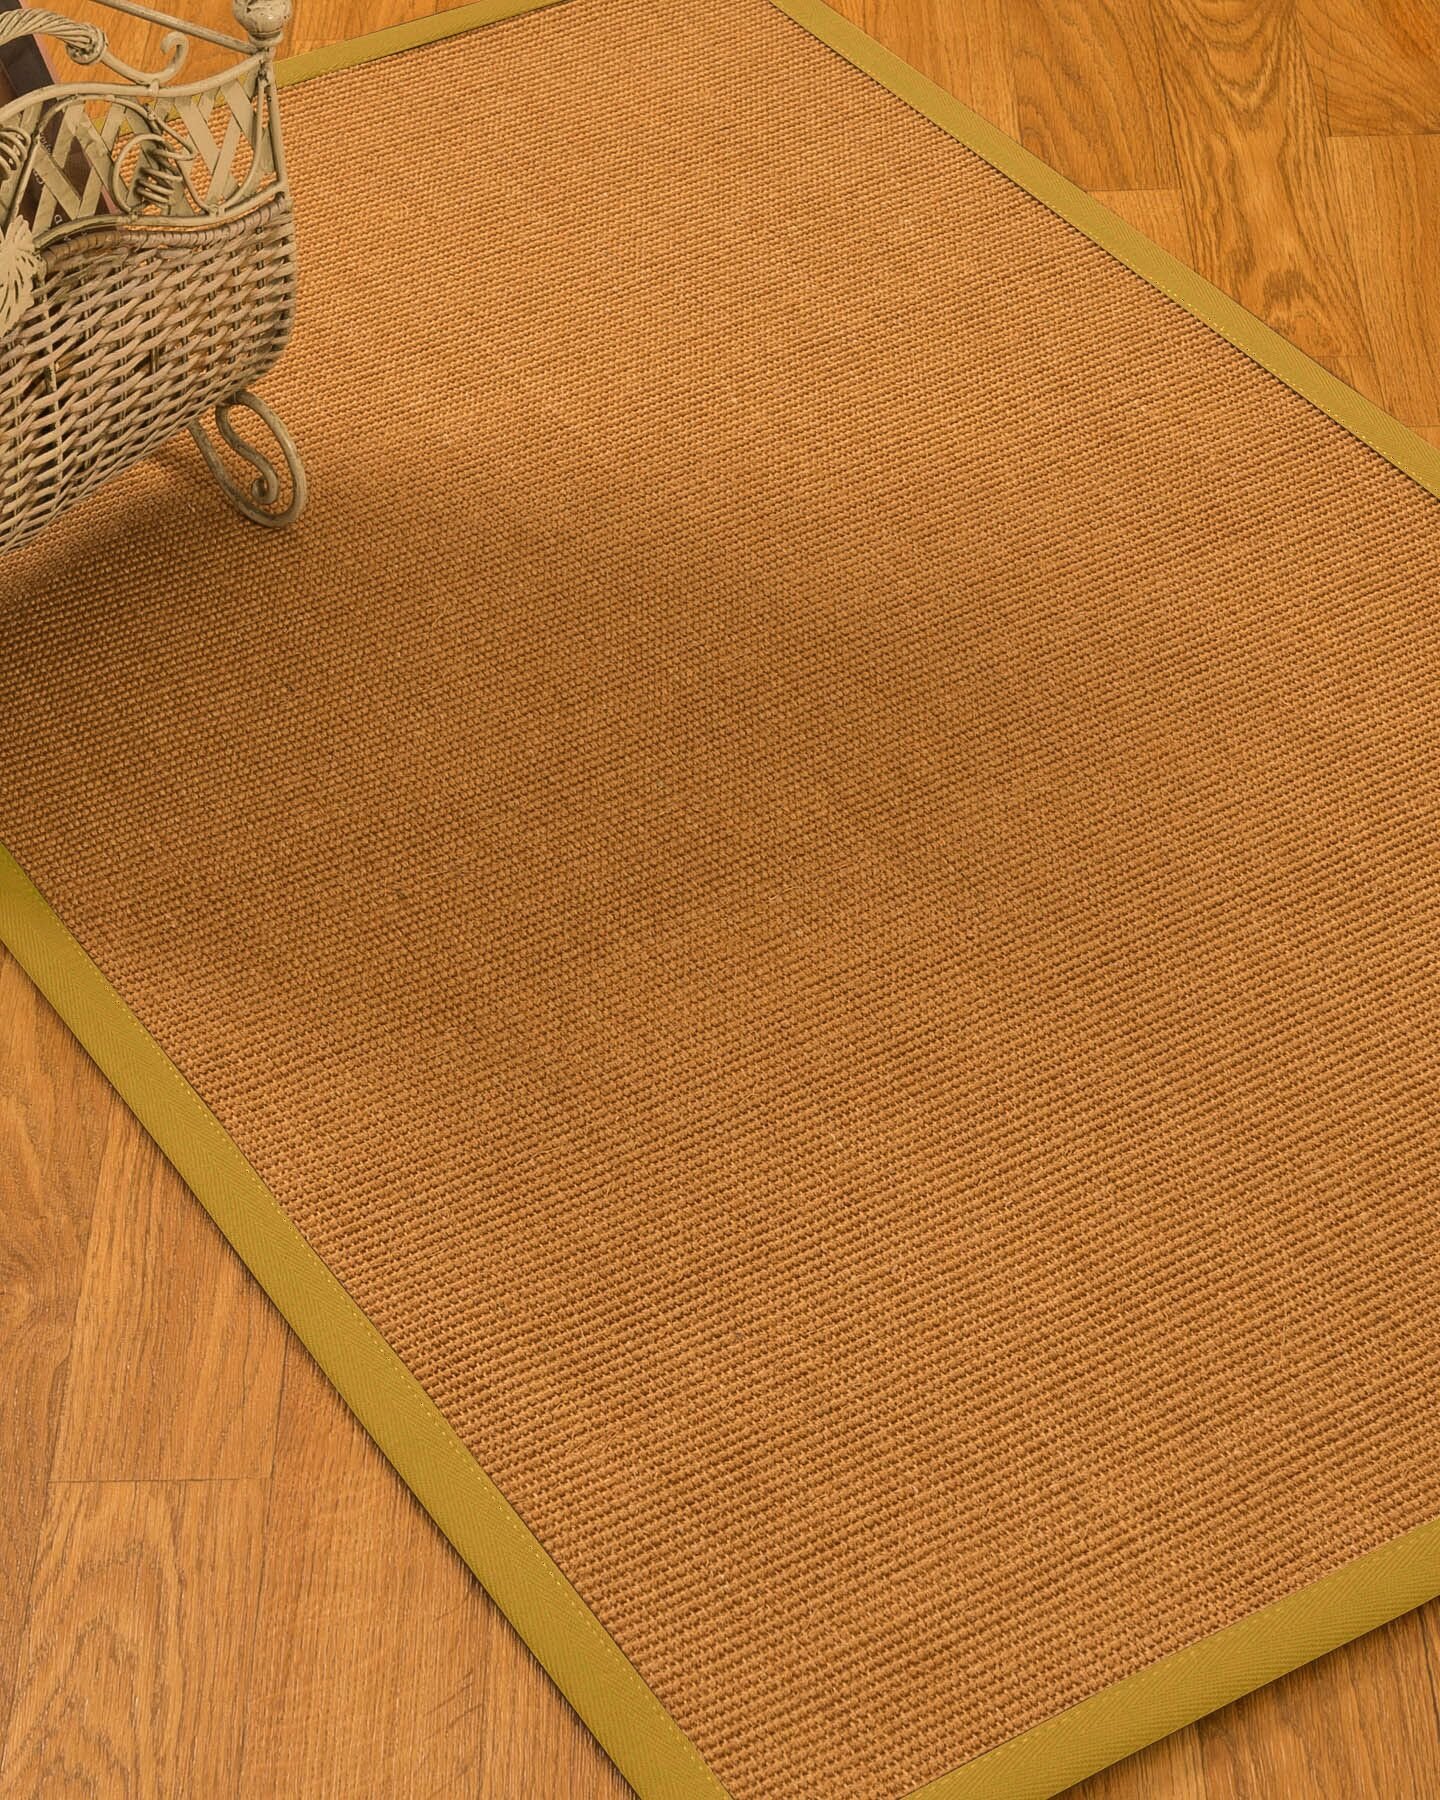 Kendari Border Hand-Woven Brown Area Rug Rug Size: Rectangle 3' x 5'